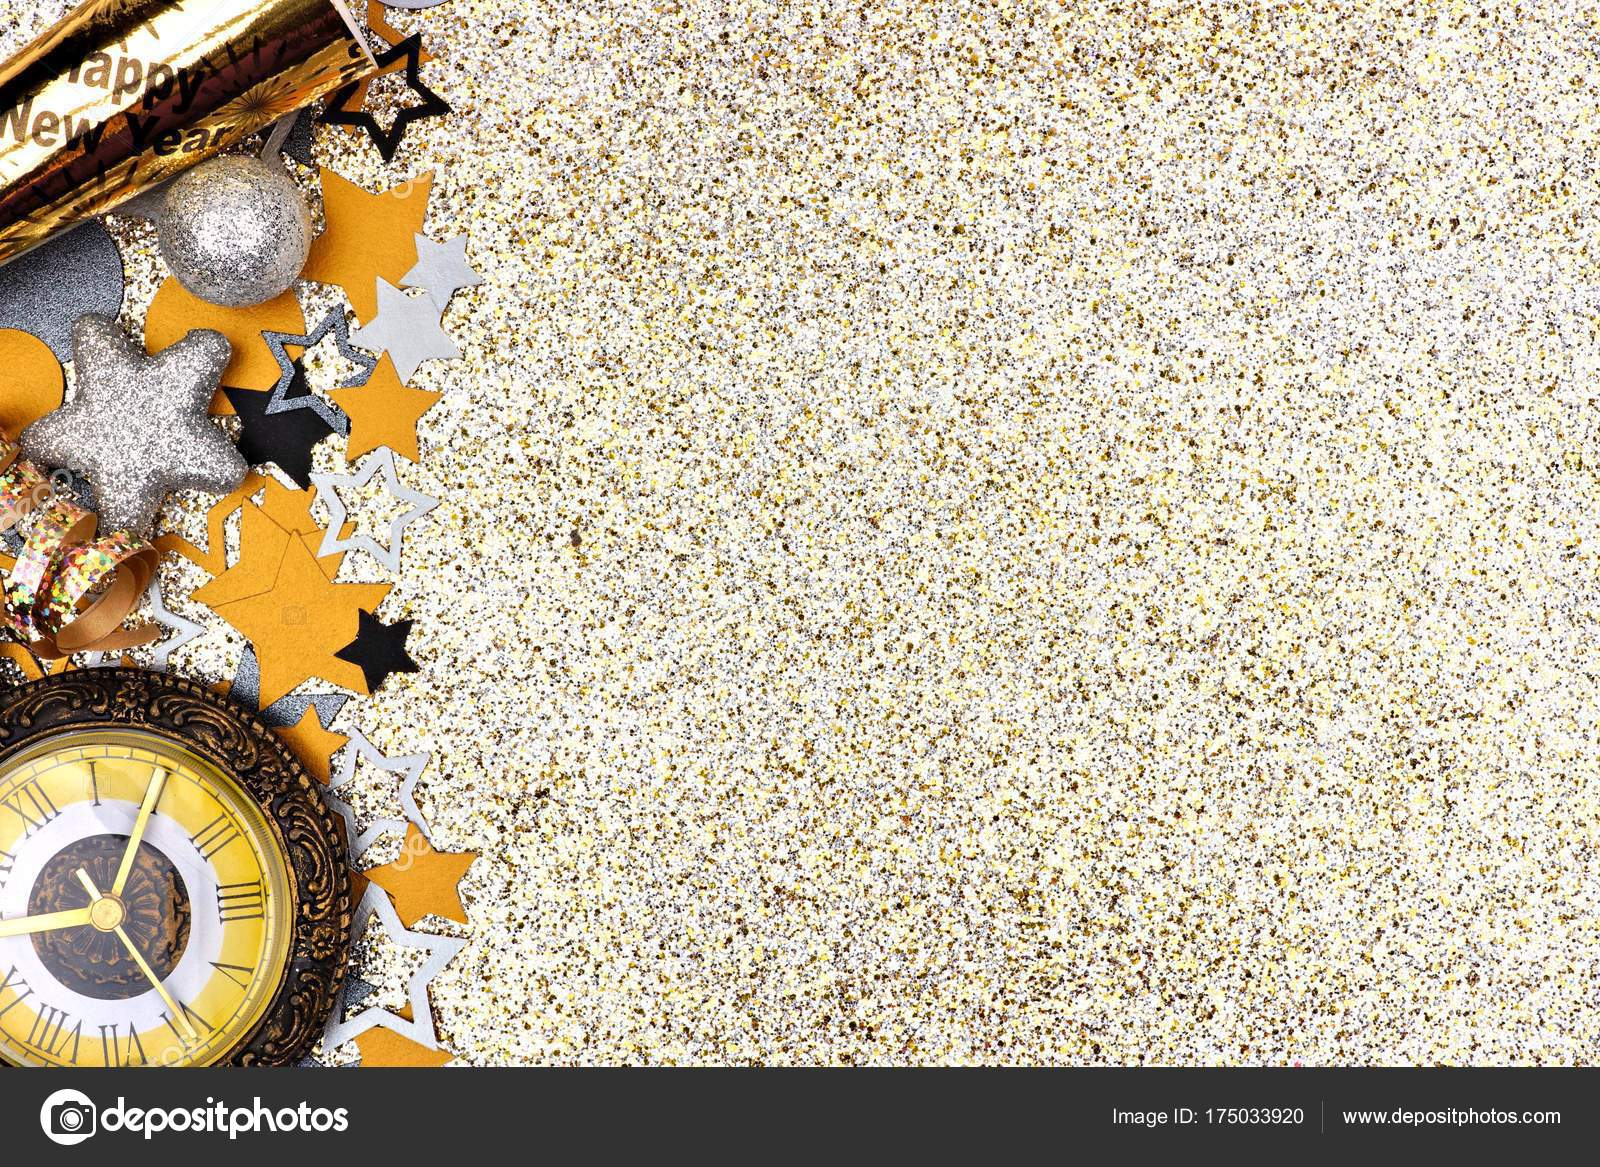 new years concept side border confetti clock party noisemaker glittery stock photo